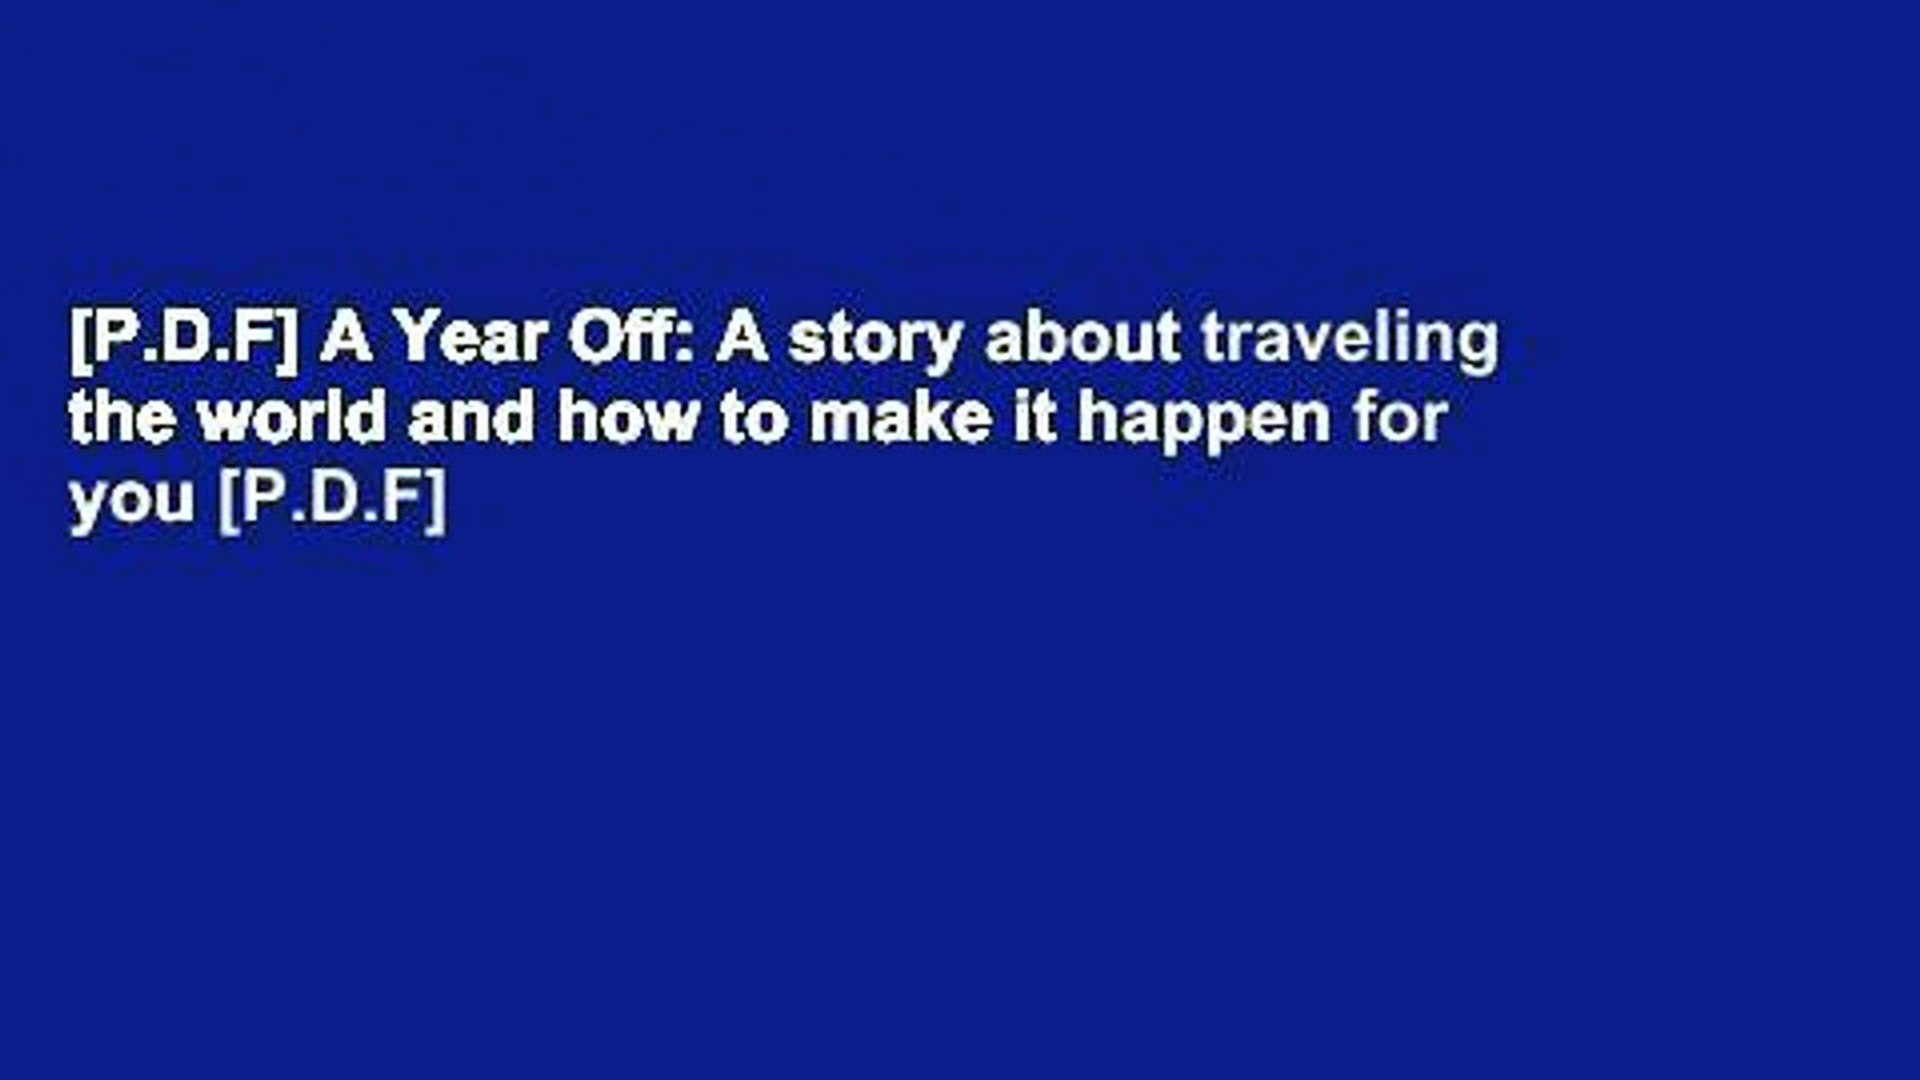 [P.D.F] A Year Off: A story about traveling the world and how to make it happen for you [P.D.F]